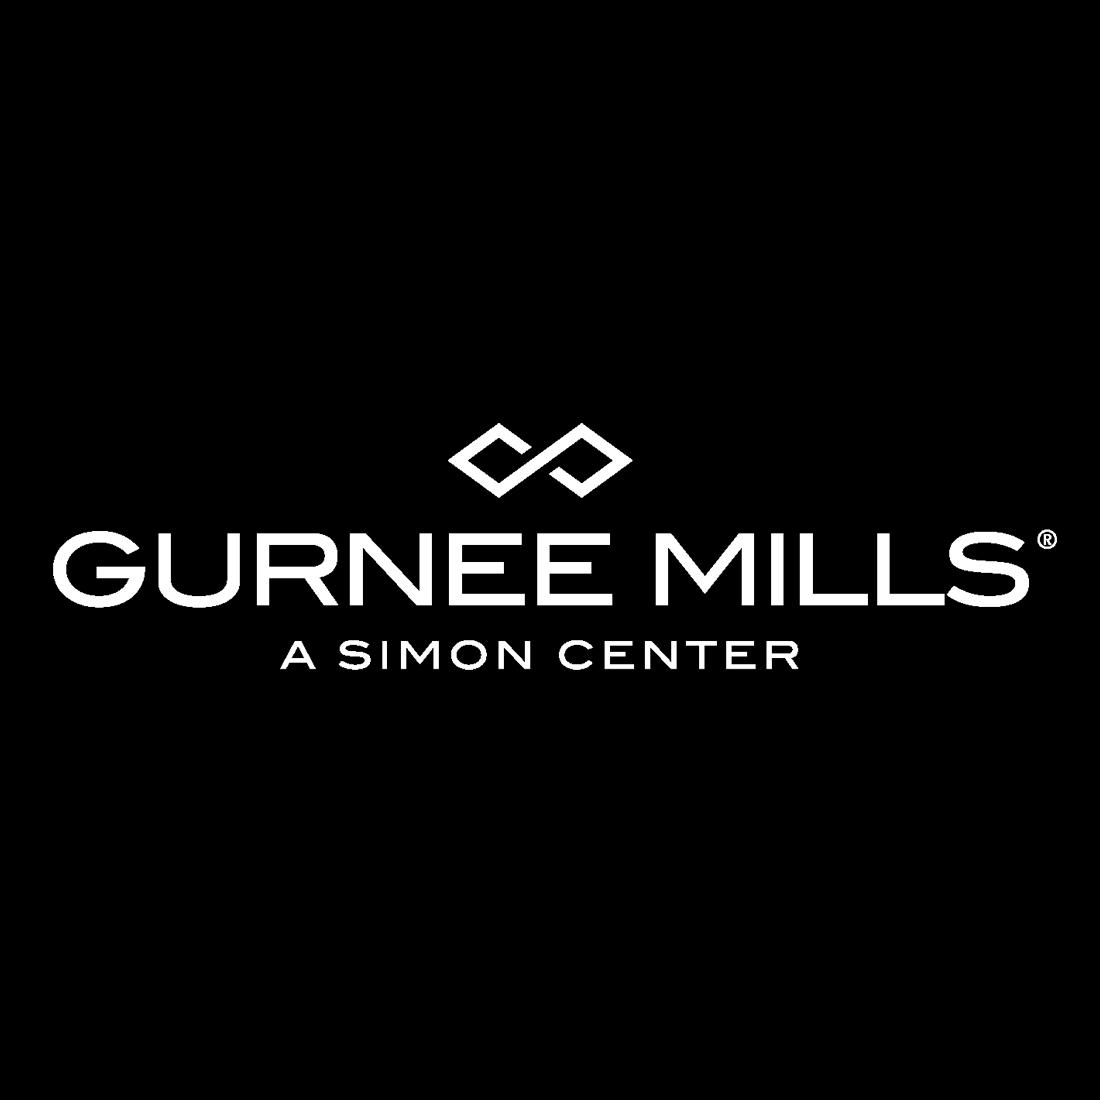 Gurnee Mills - Family at Simon - Tommy Hilfiger